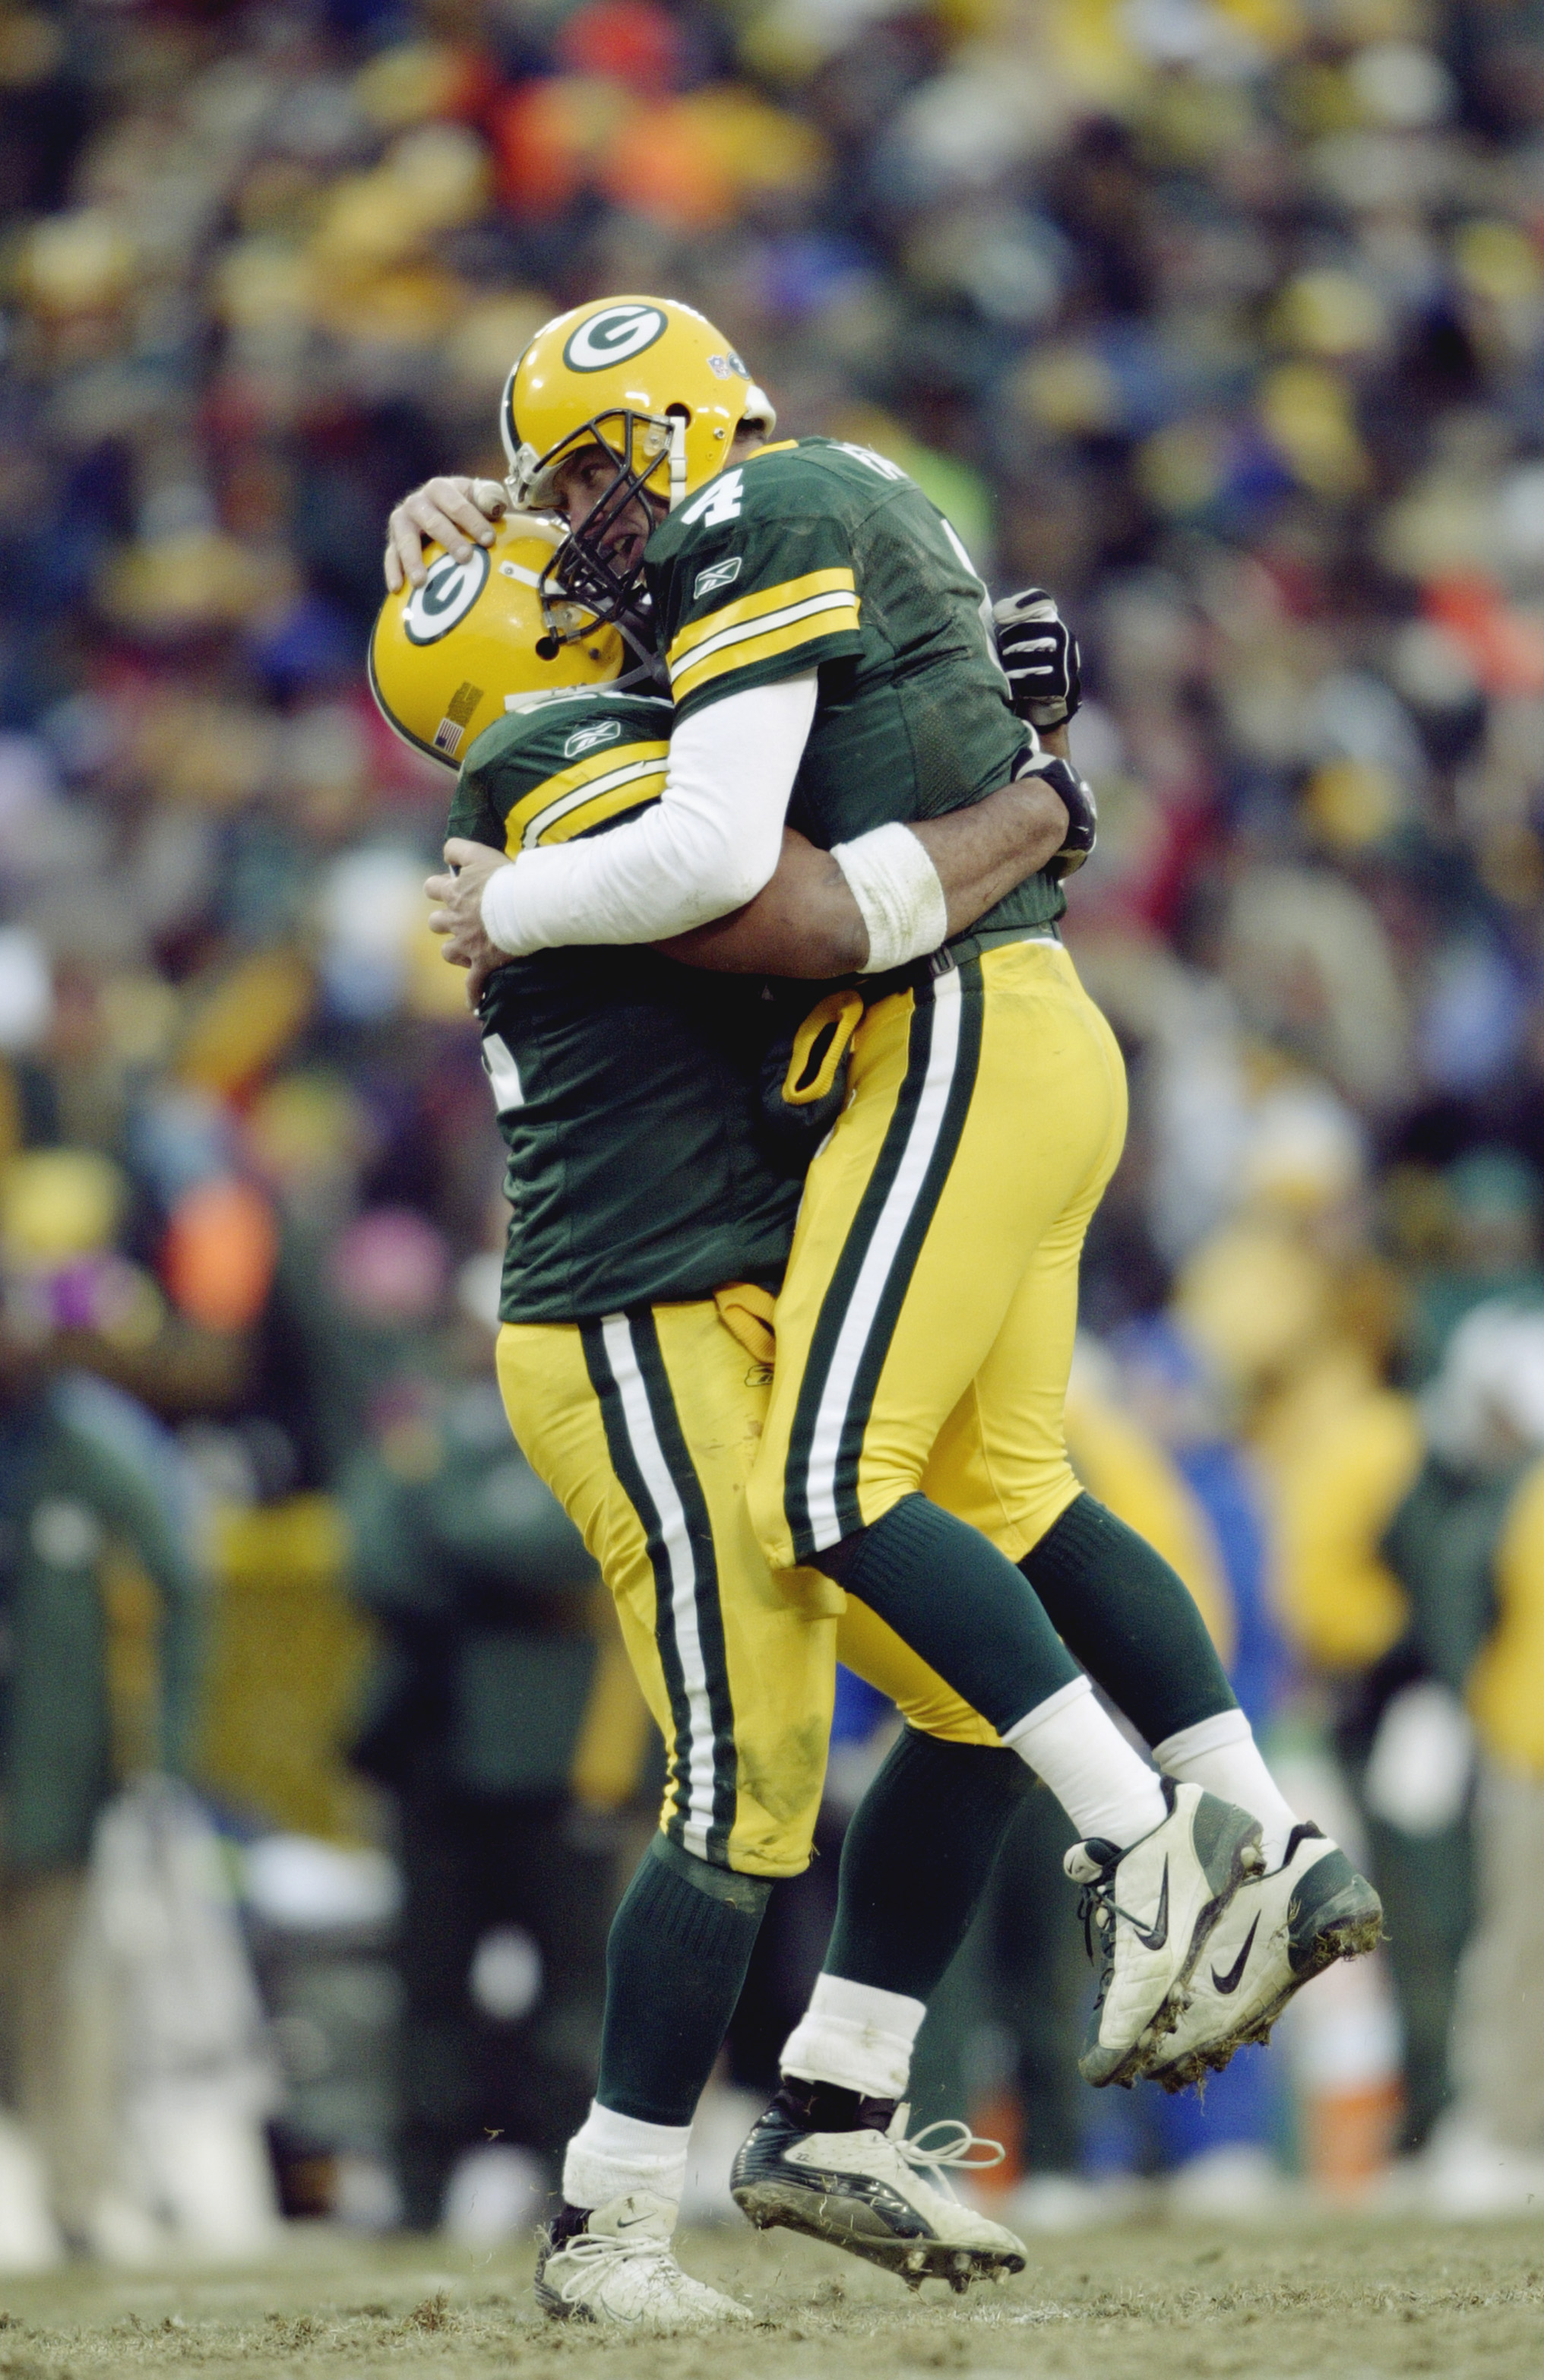 GREEN BAY, WI - JANUARY 4: Quarterback Brett Favre #4 and fullback Nick Luchey #22 of the Green Bay Packers hug during the NFC playoff game against the Seattle Seahawks on January 4, 2004 in Lambeau Field in Green Bay, Wisconsin. The Packers defeated the